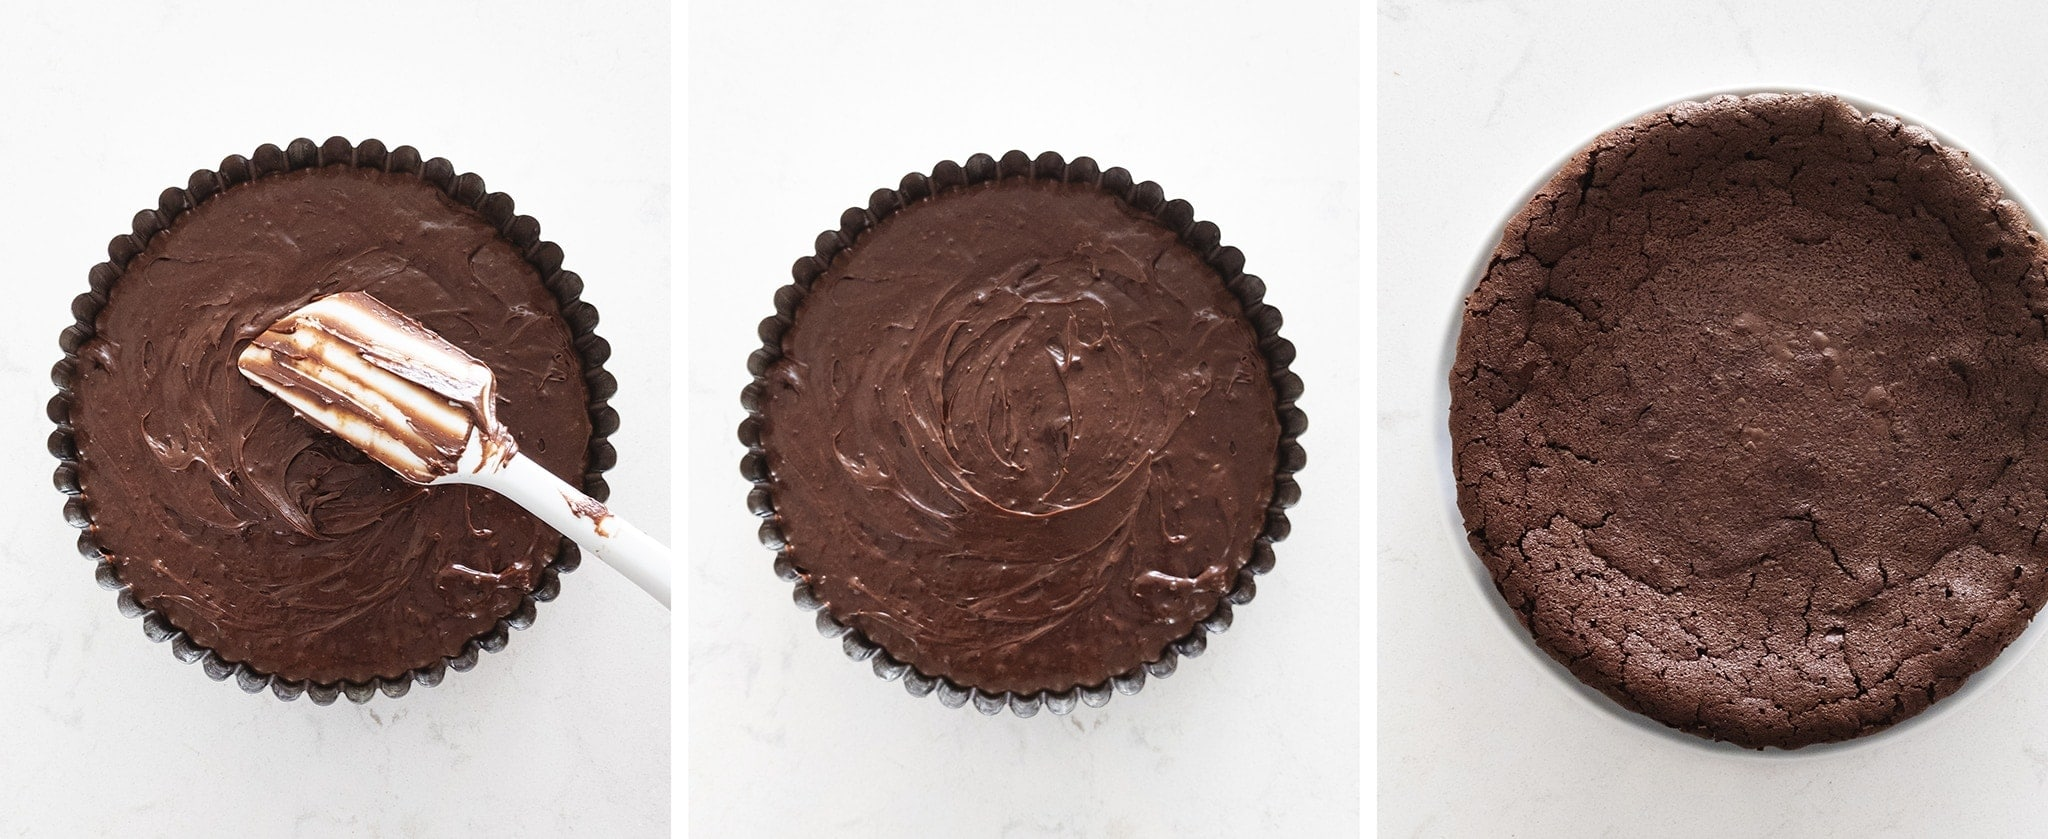 Flourless chocolate cake batter in a tart pan before and after baking